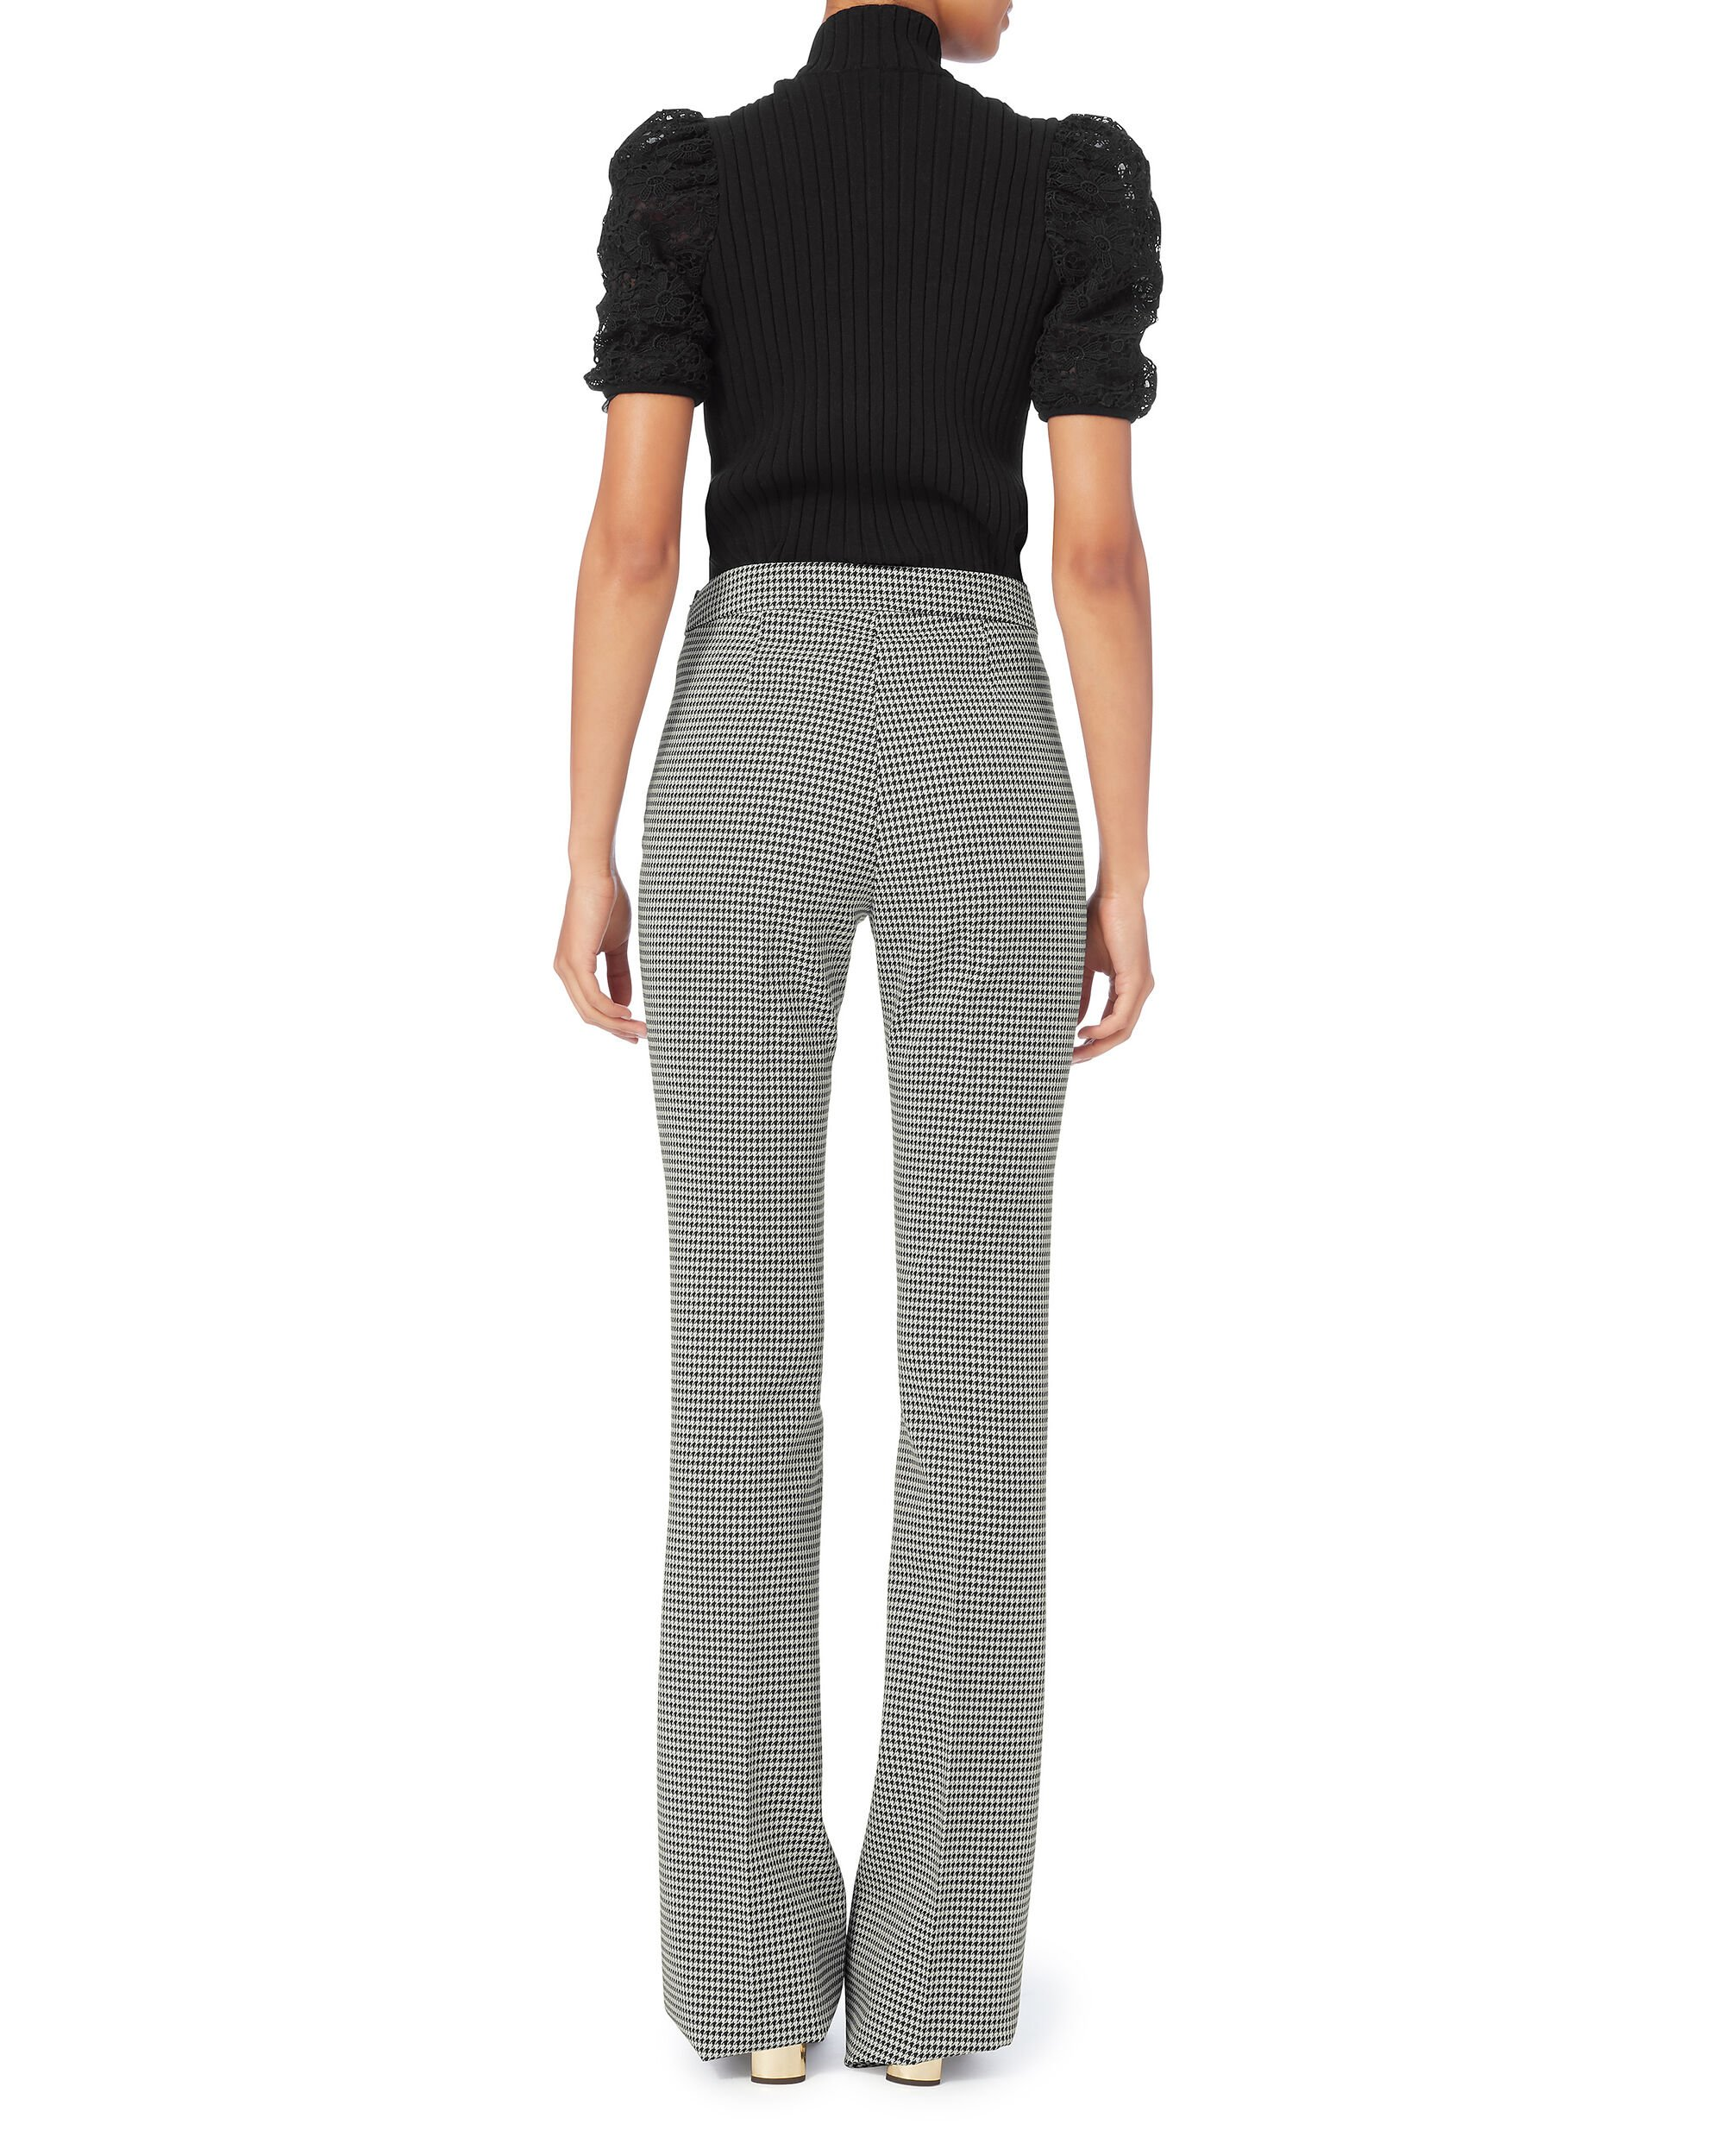 Houndstooth Flare Trousers, PAT-CHECK, hi-res